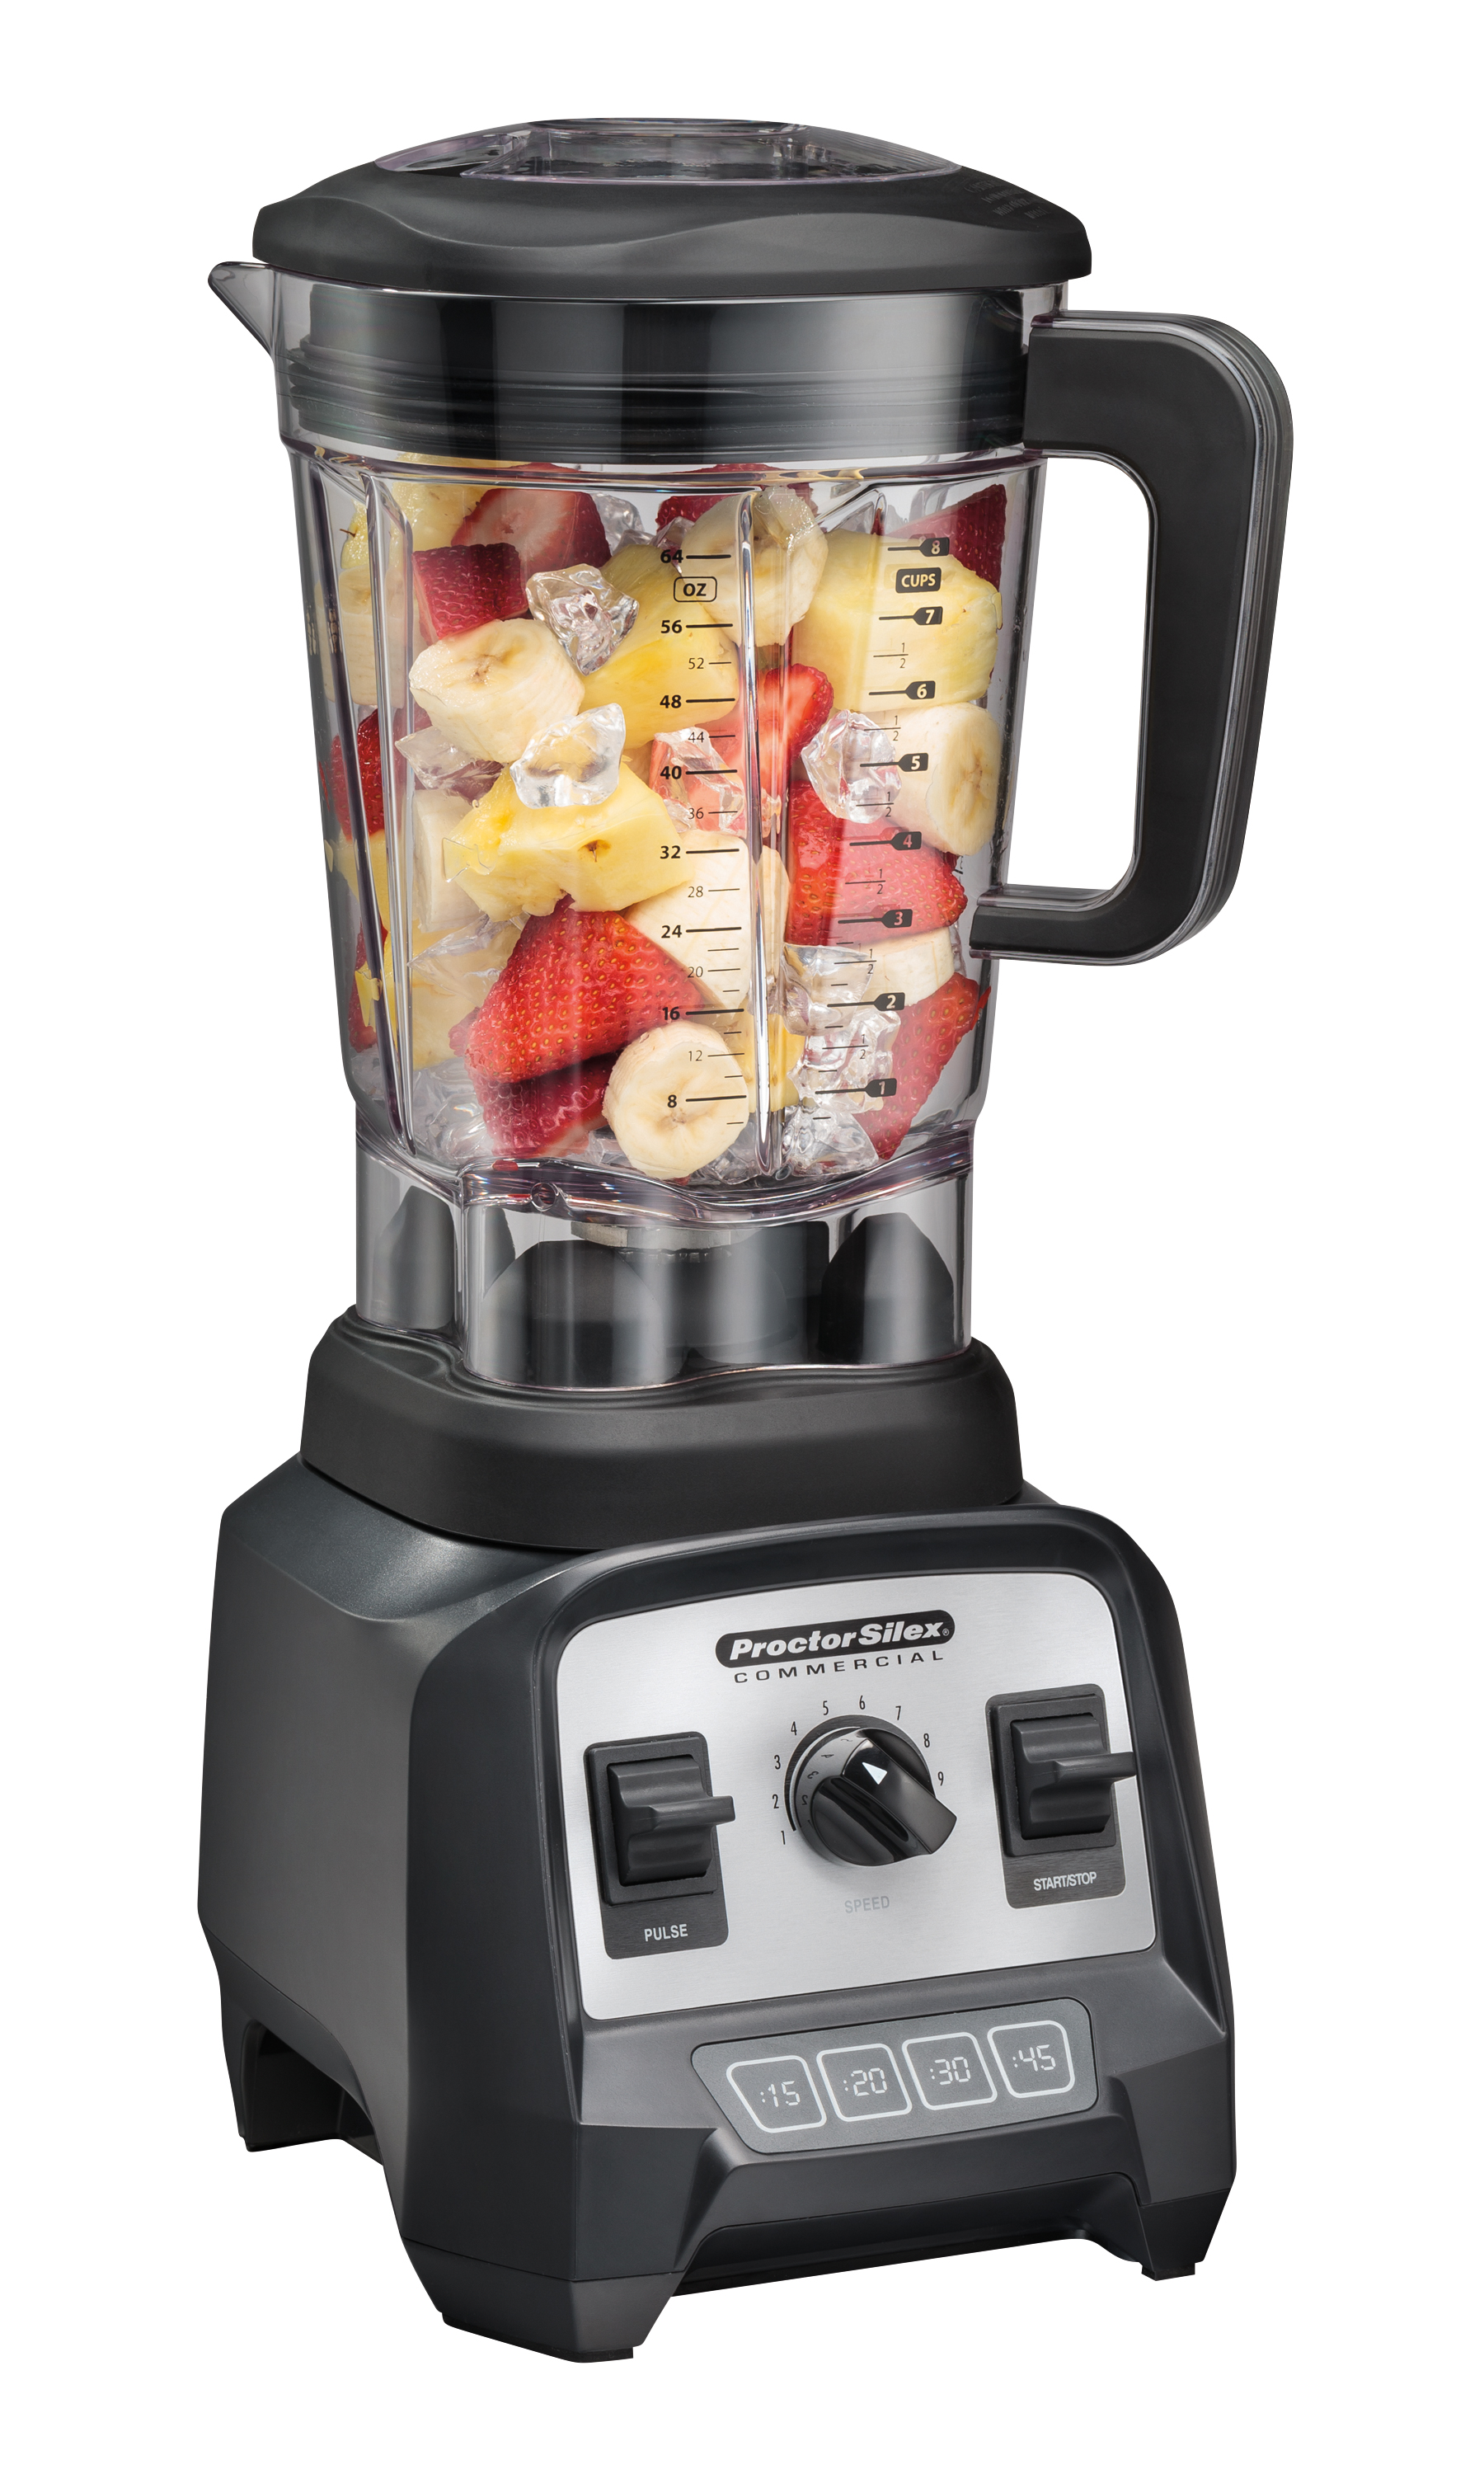 Proctor Silex U00ae Commercial High-performance Blender